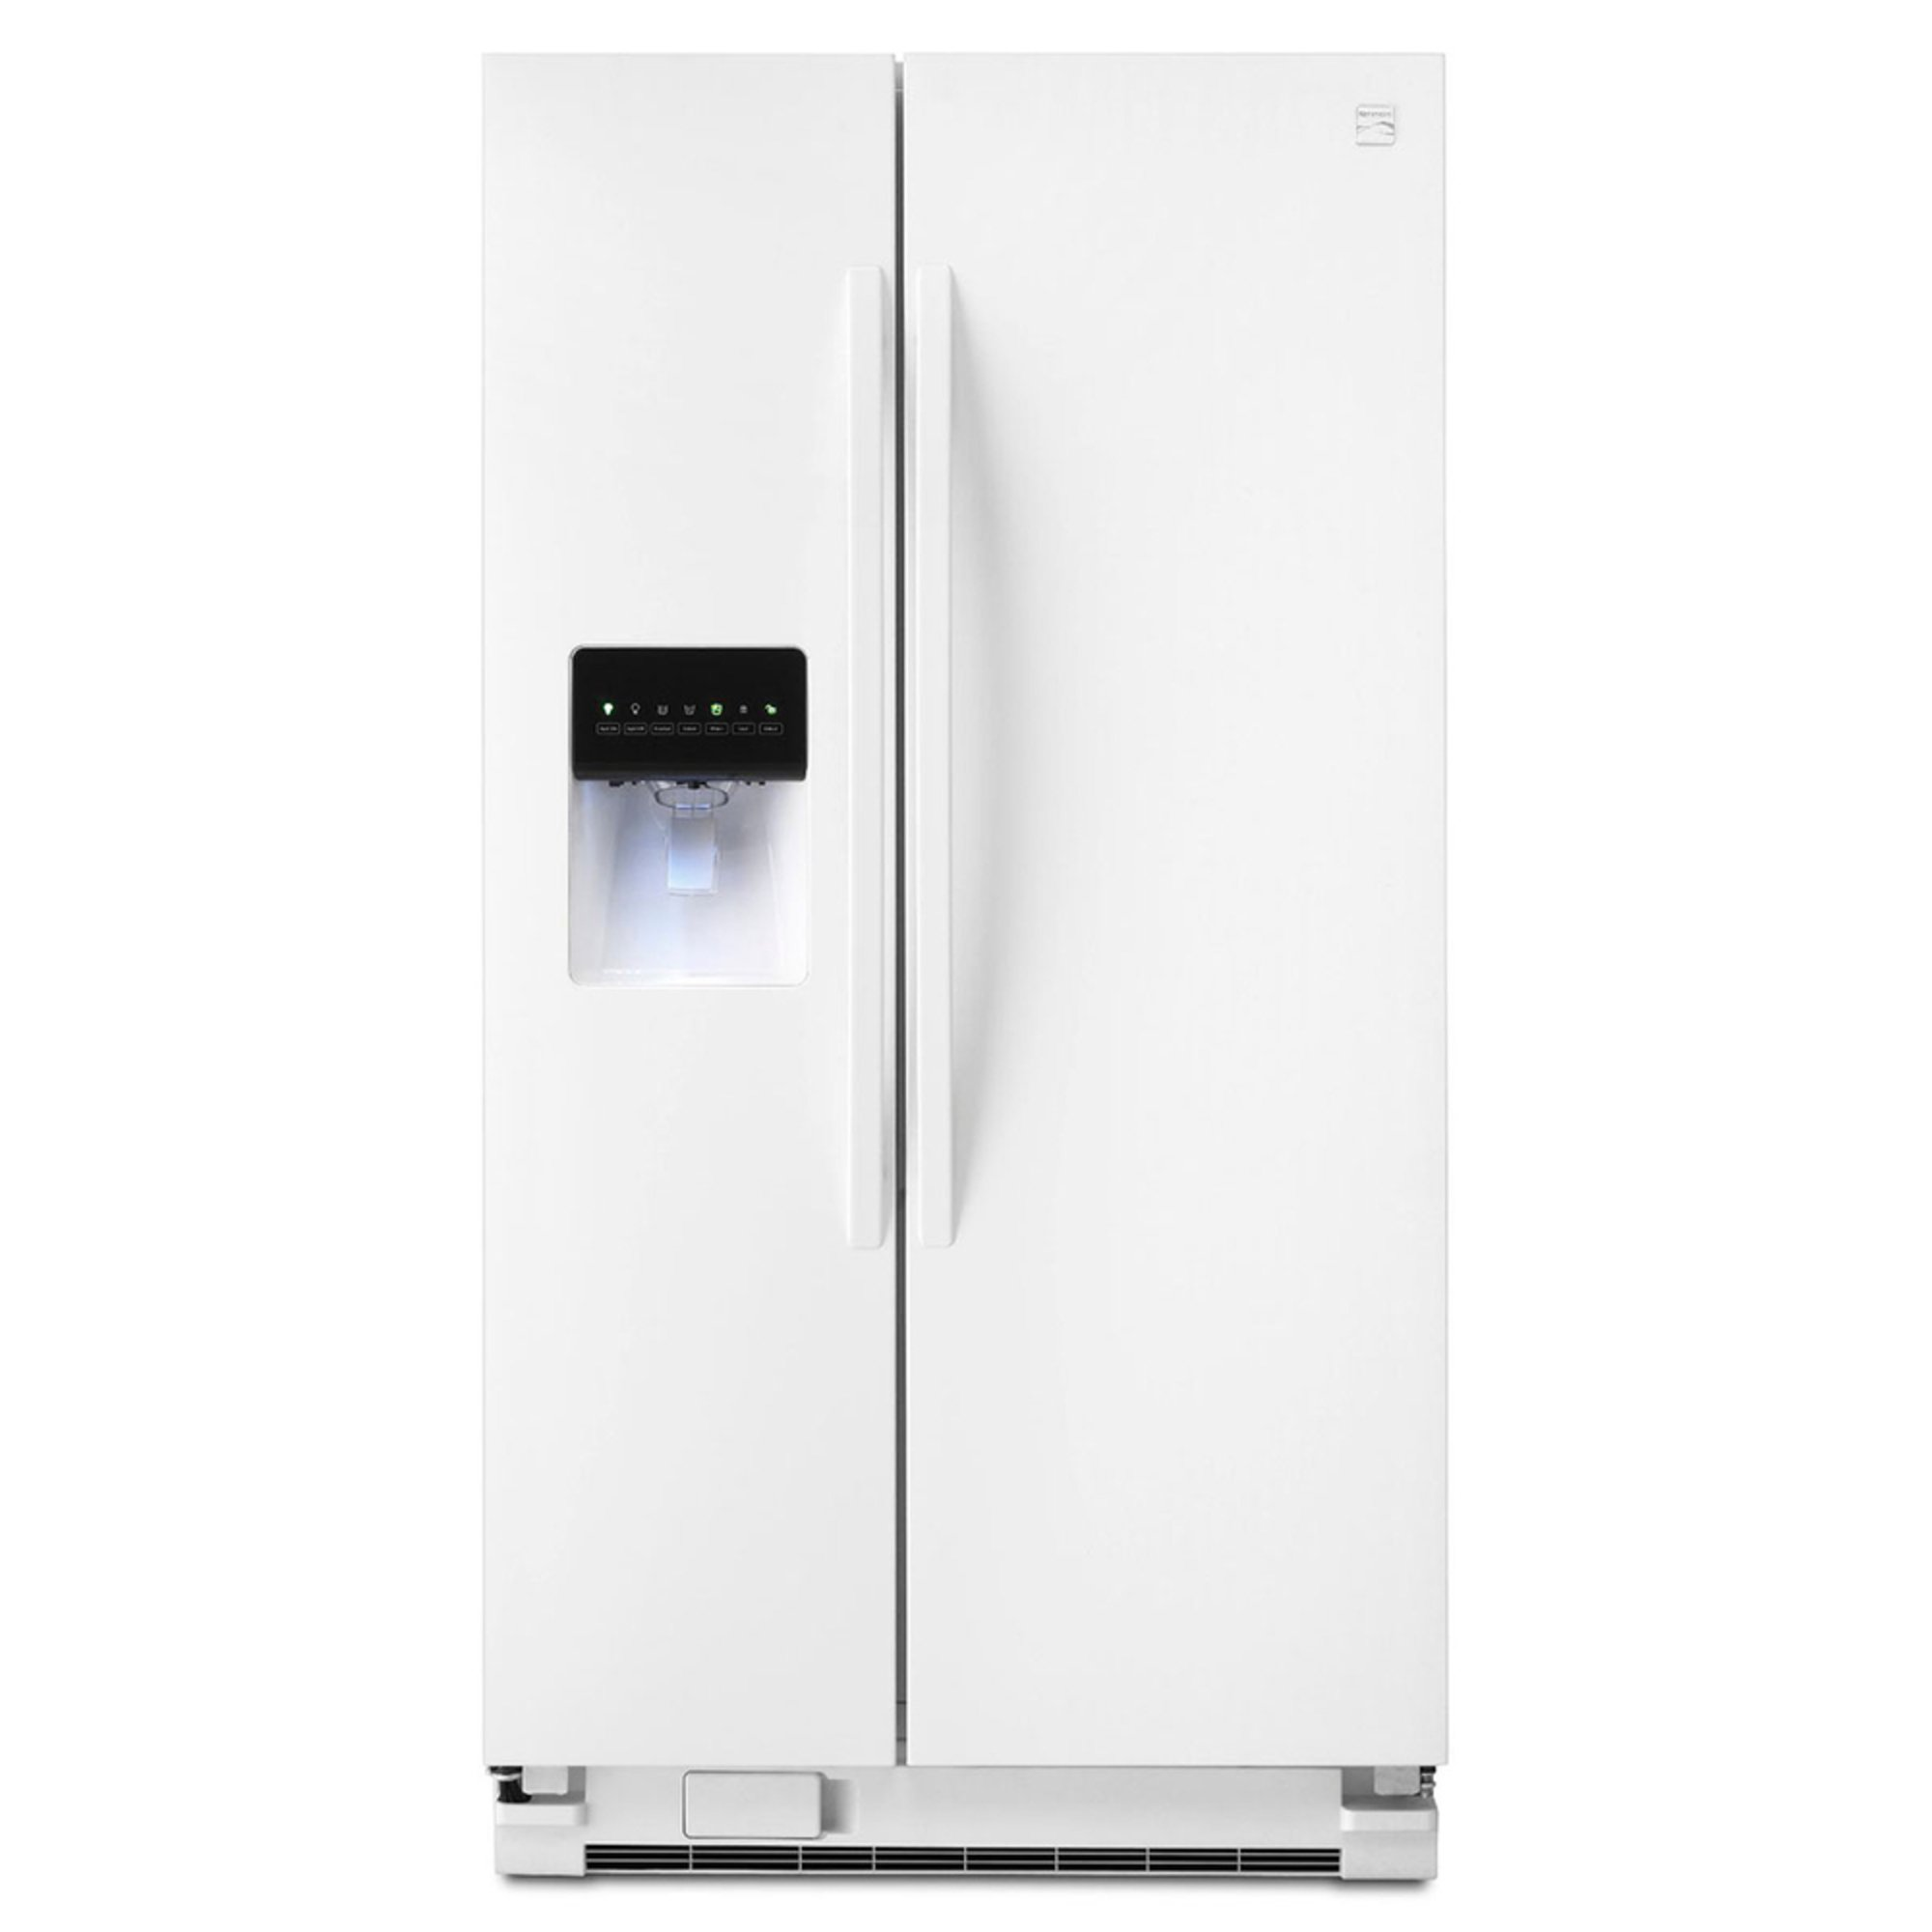 How To Level A Kenmore Refrigerator Kenmore 25 Cuft Side By Side Refrigerator White 46 51122